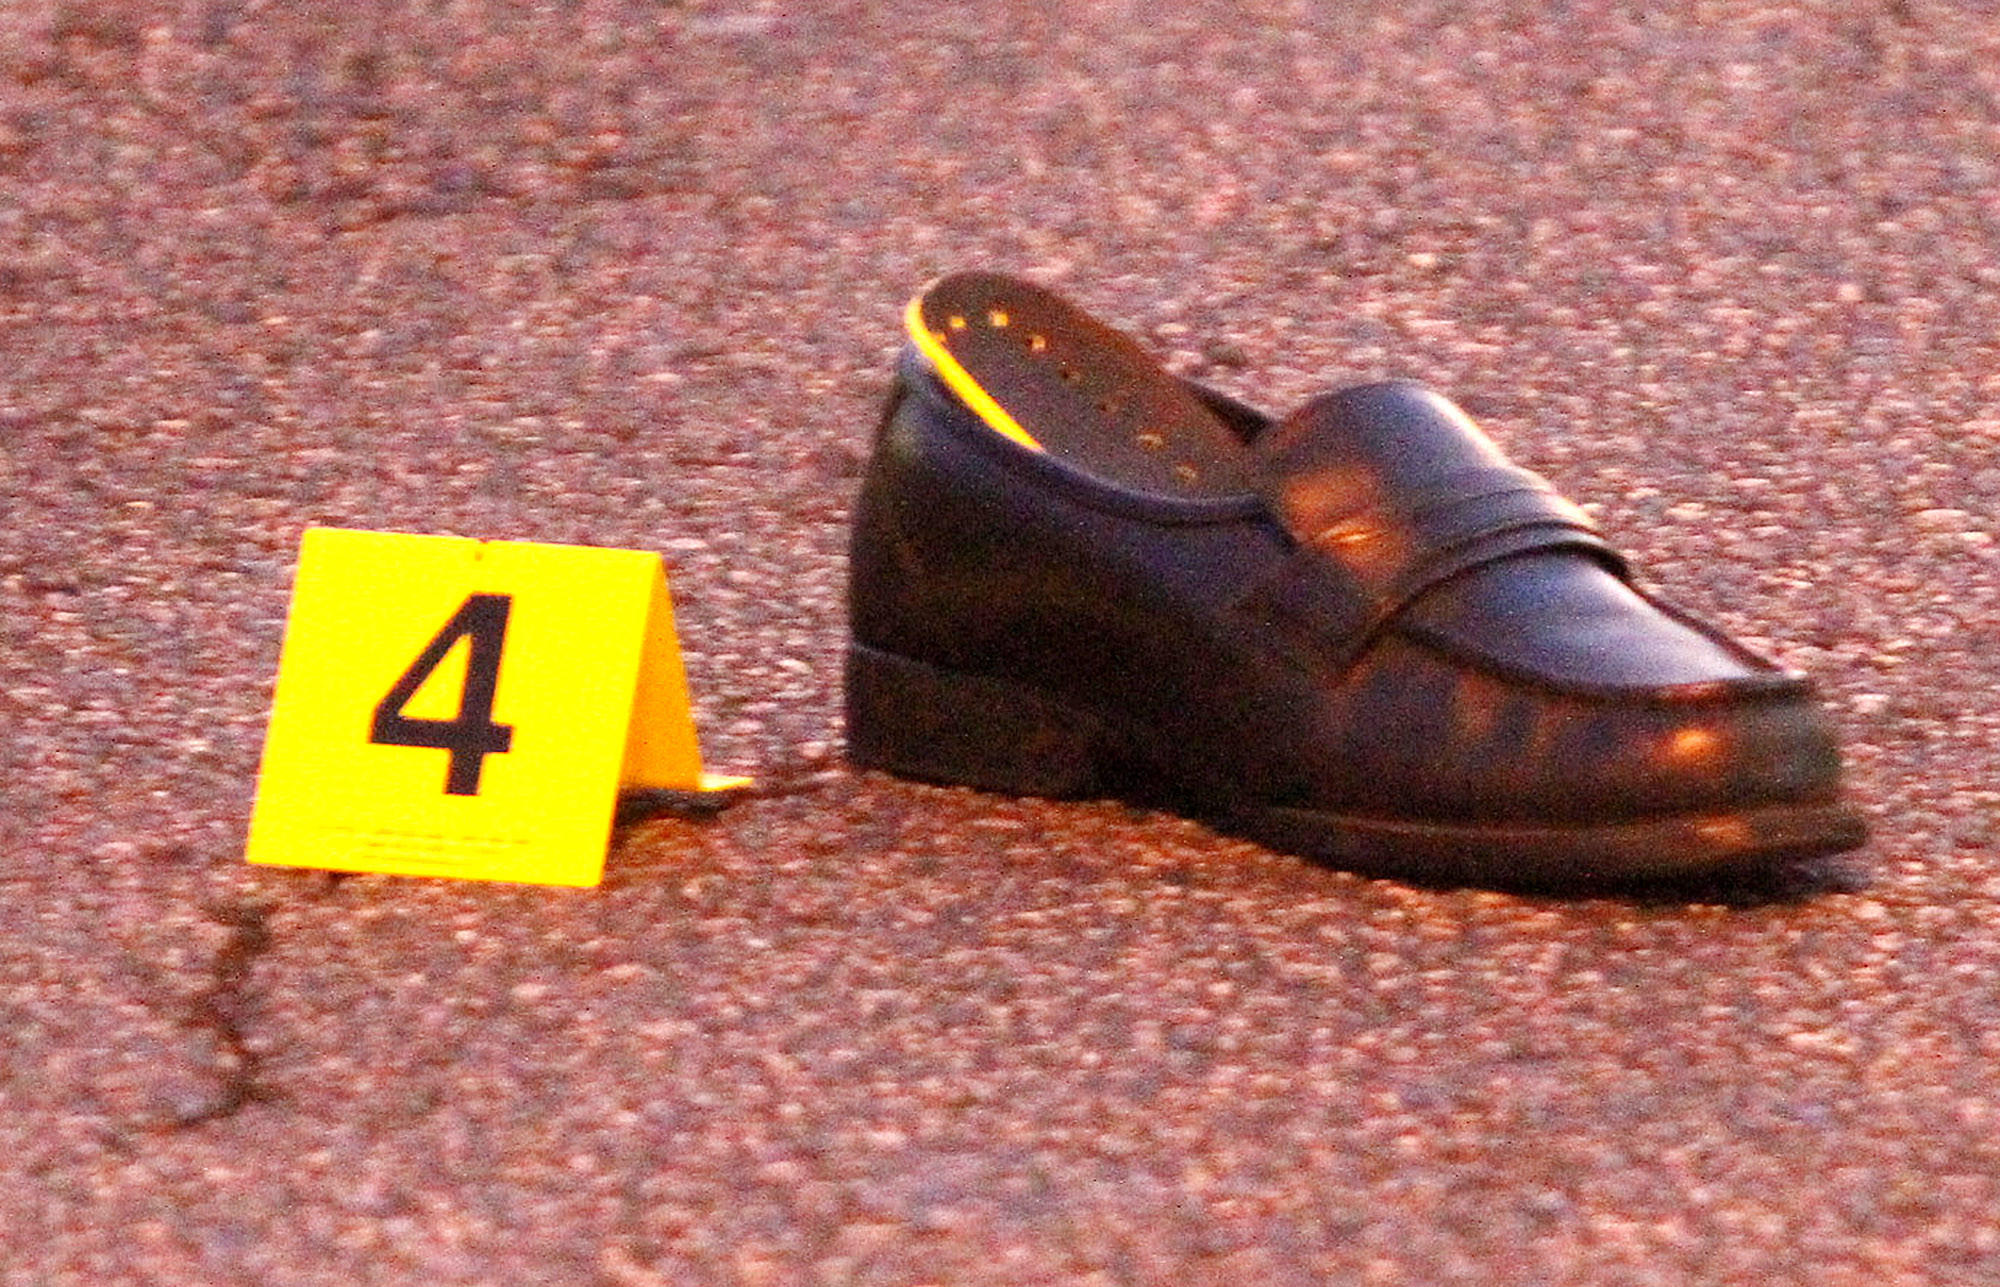 A shoe, tagged as evidence, on the street at the scene where a pedestrian was hit by a motorist on the corner of Glenoaks Blvd. and Western Avenue in Glendale on Monday, January 27, 2014. The pedestrian was taken to the hospital with severe head injuries.